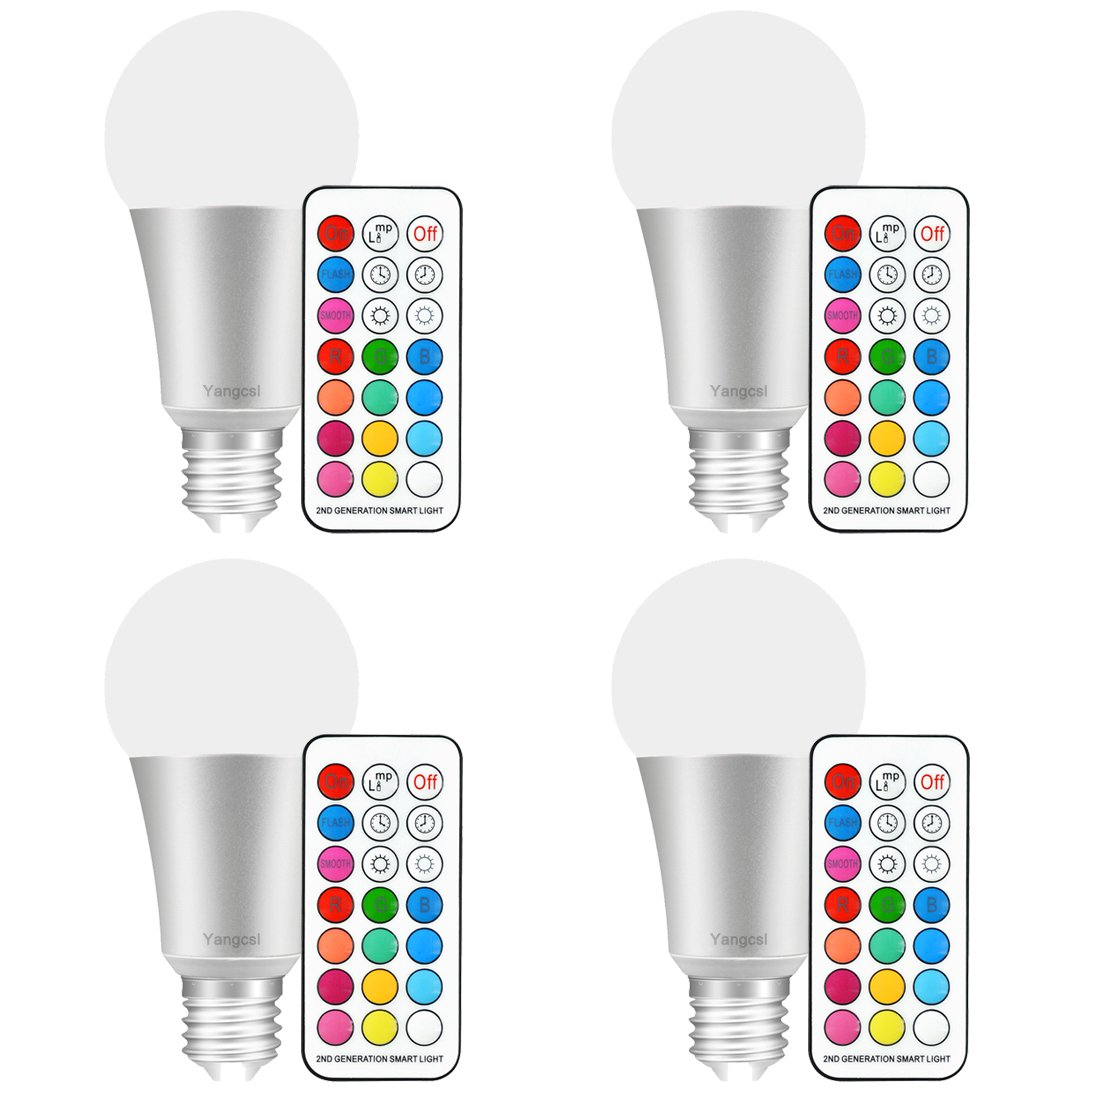 Yangcsl 10W A19 Timing Remote Controller Color Changing LED Light Bulbs, Double Memory and Wall Switch Control, RGB + Daylihgt, 60W Incandescent Bulb Equivalent (Pack of 4)